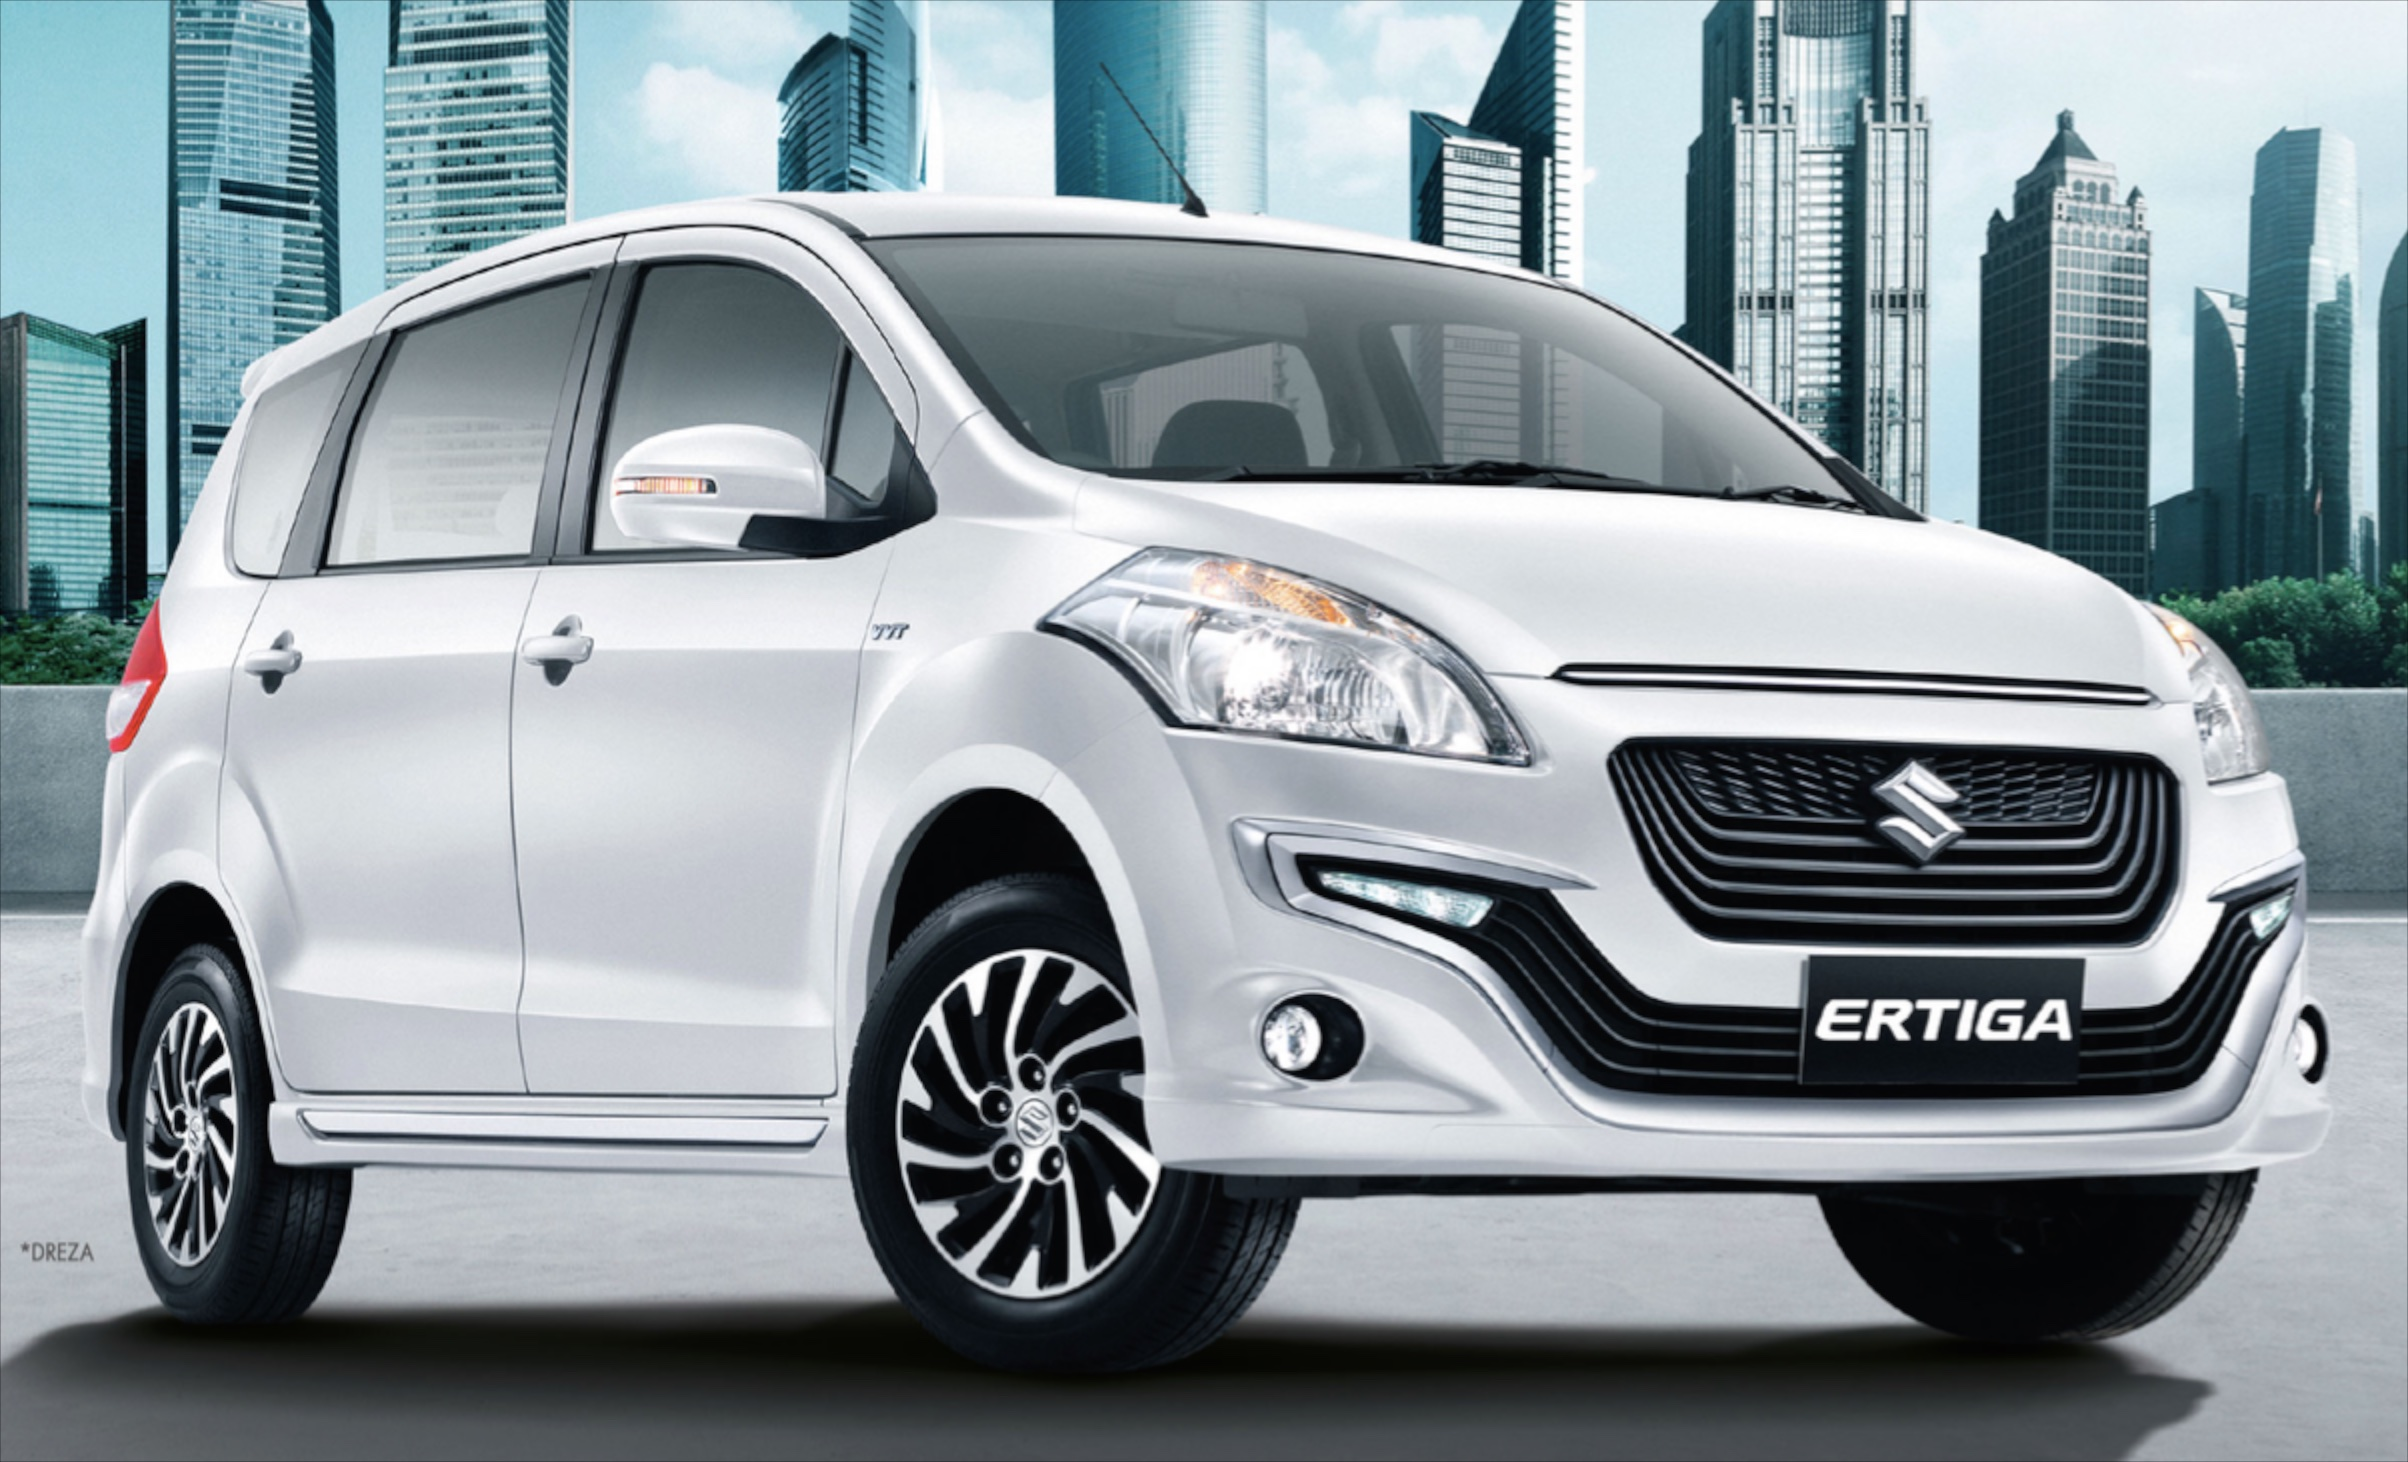 Suzuki Ertiga, Dreza Launched In Thailand, From RM76k